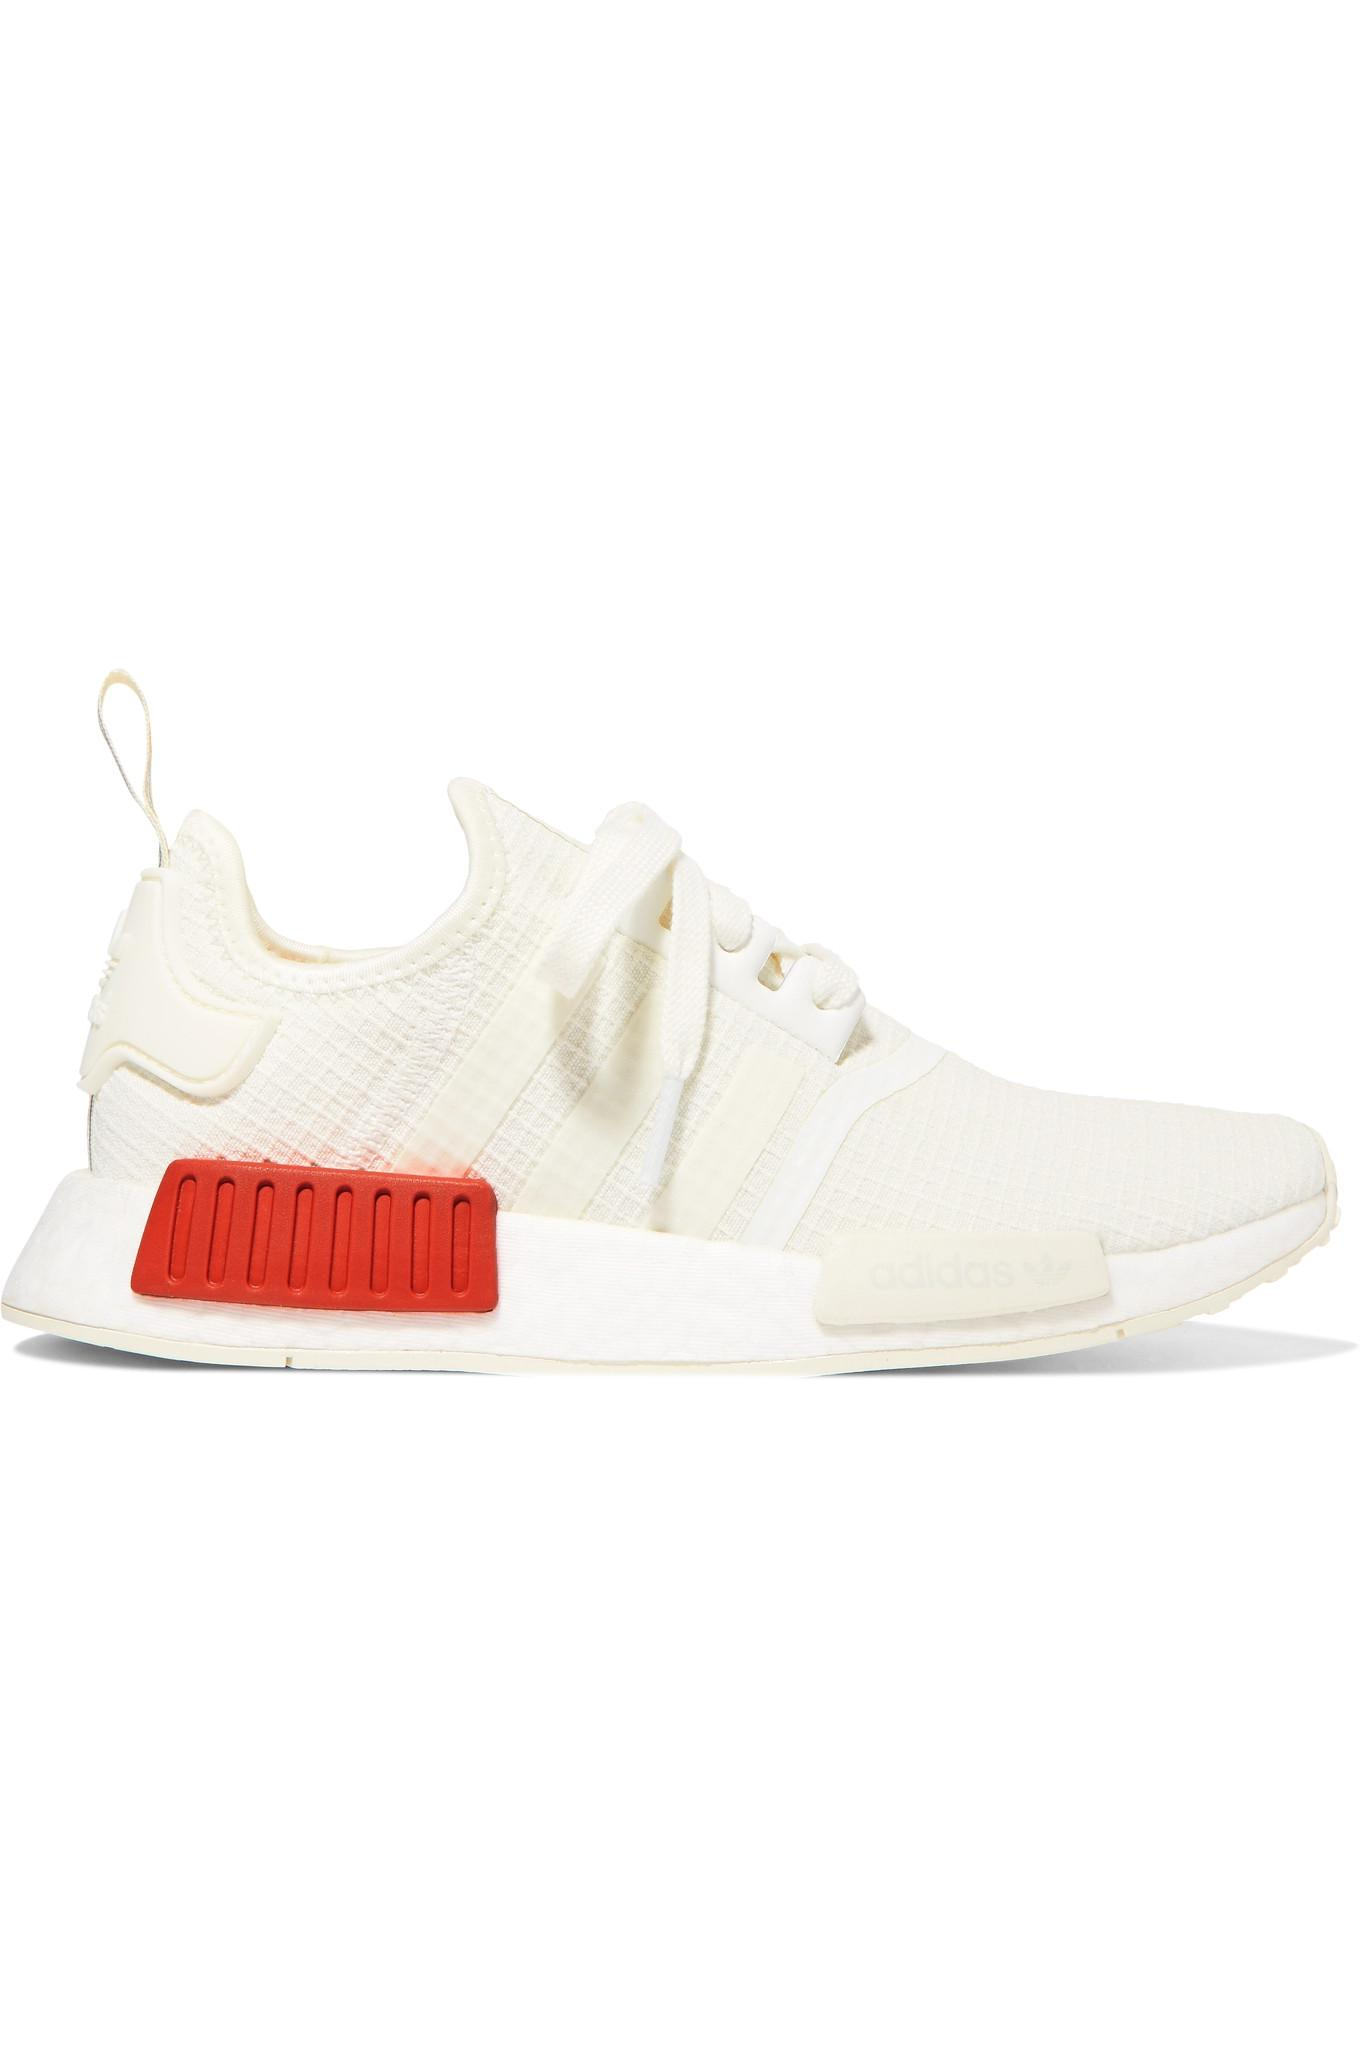 443e30846502b3 adidas Originals. Women s White Nmd R1 Rubber-trimmed Primeknit Trainers